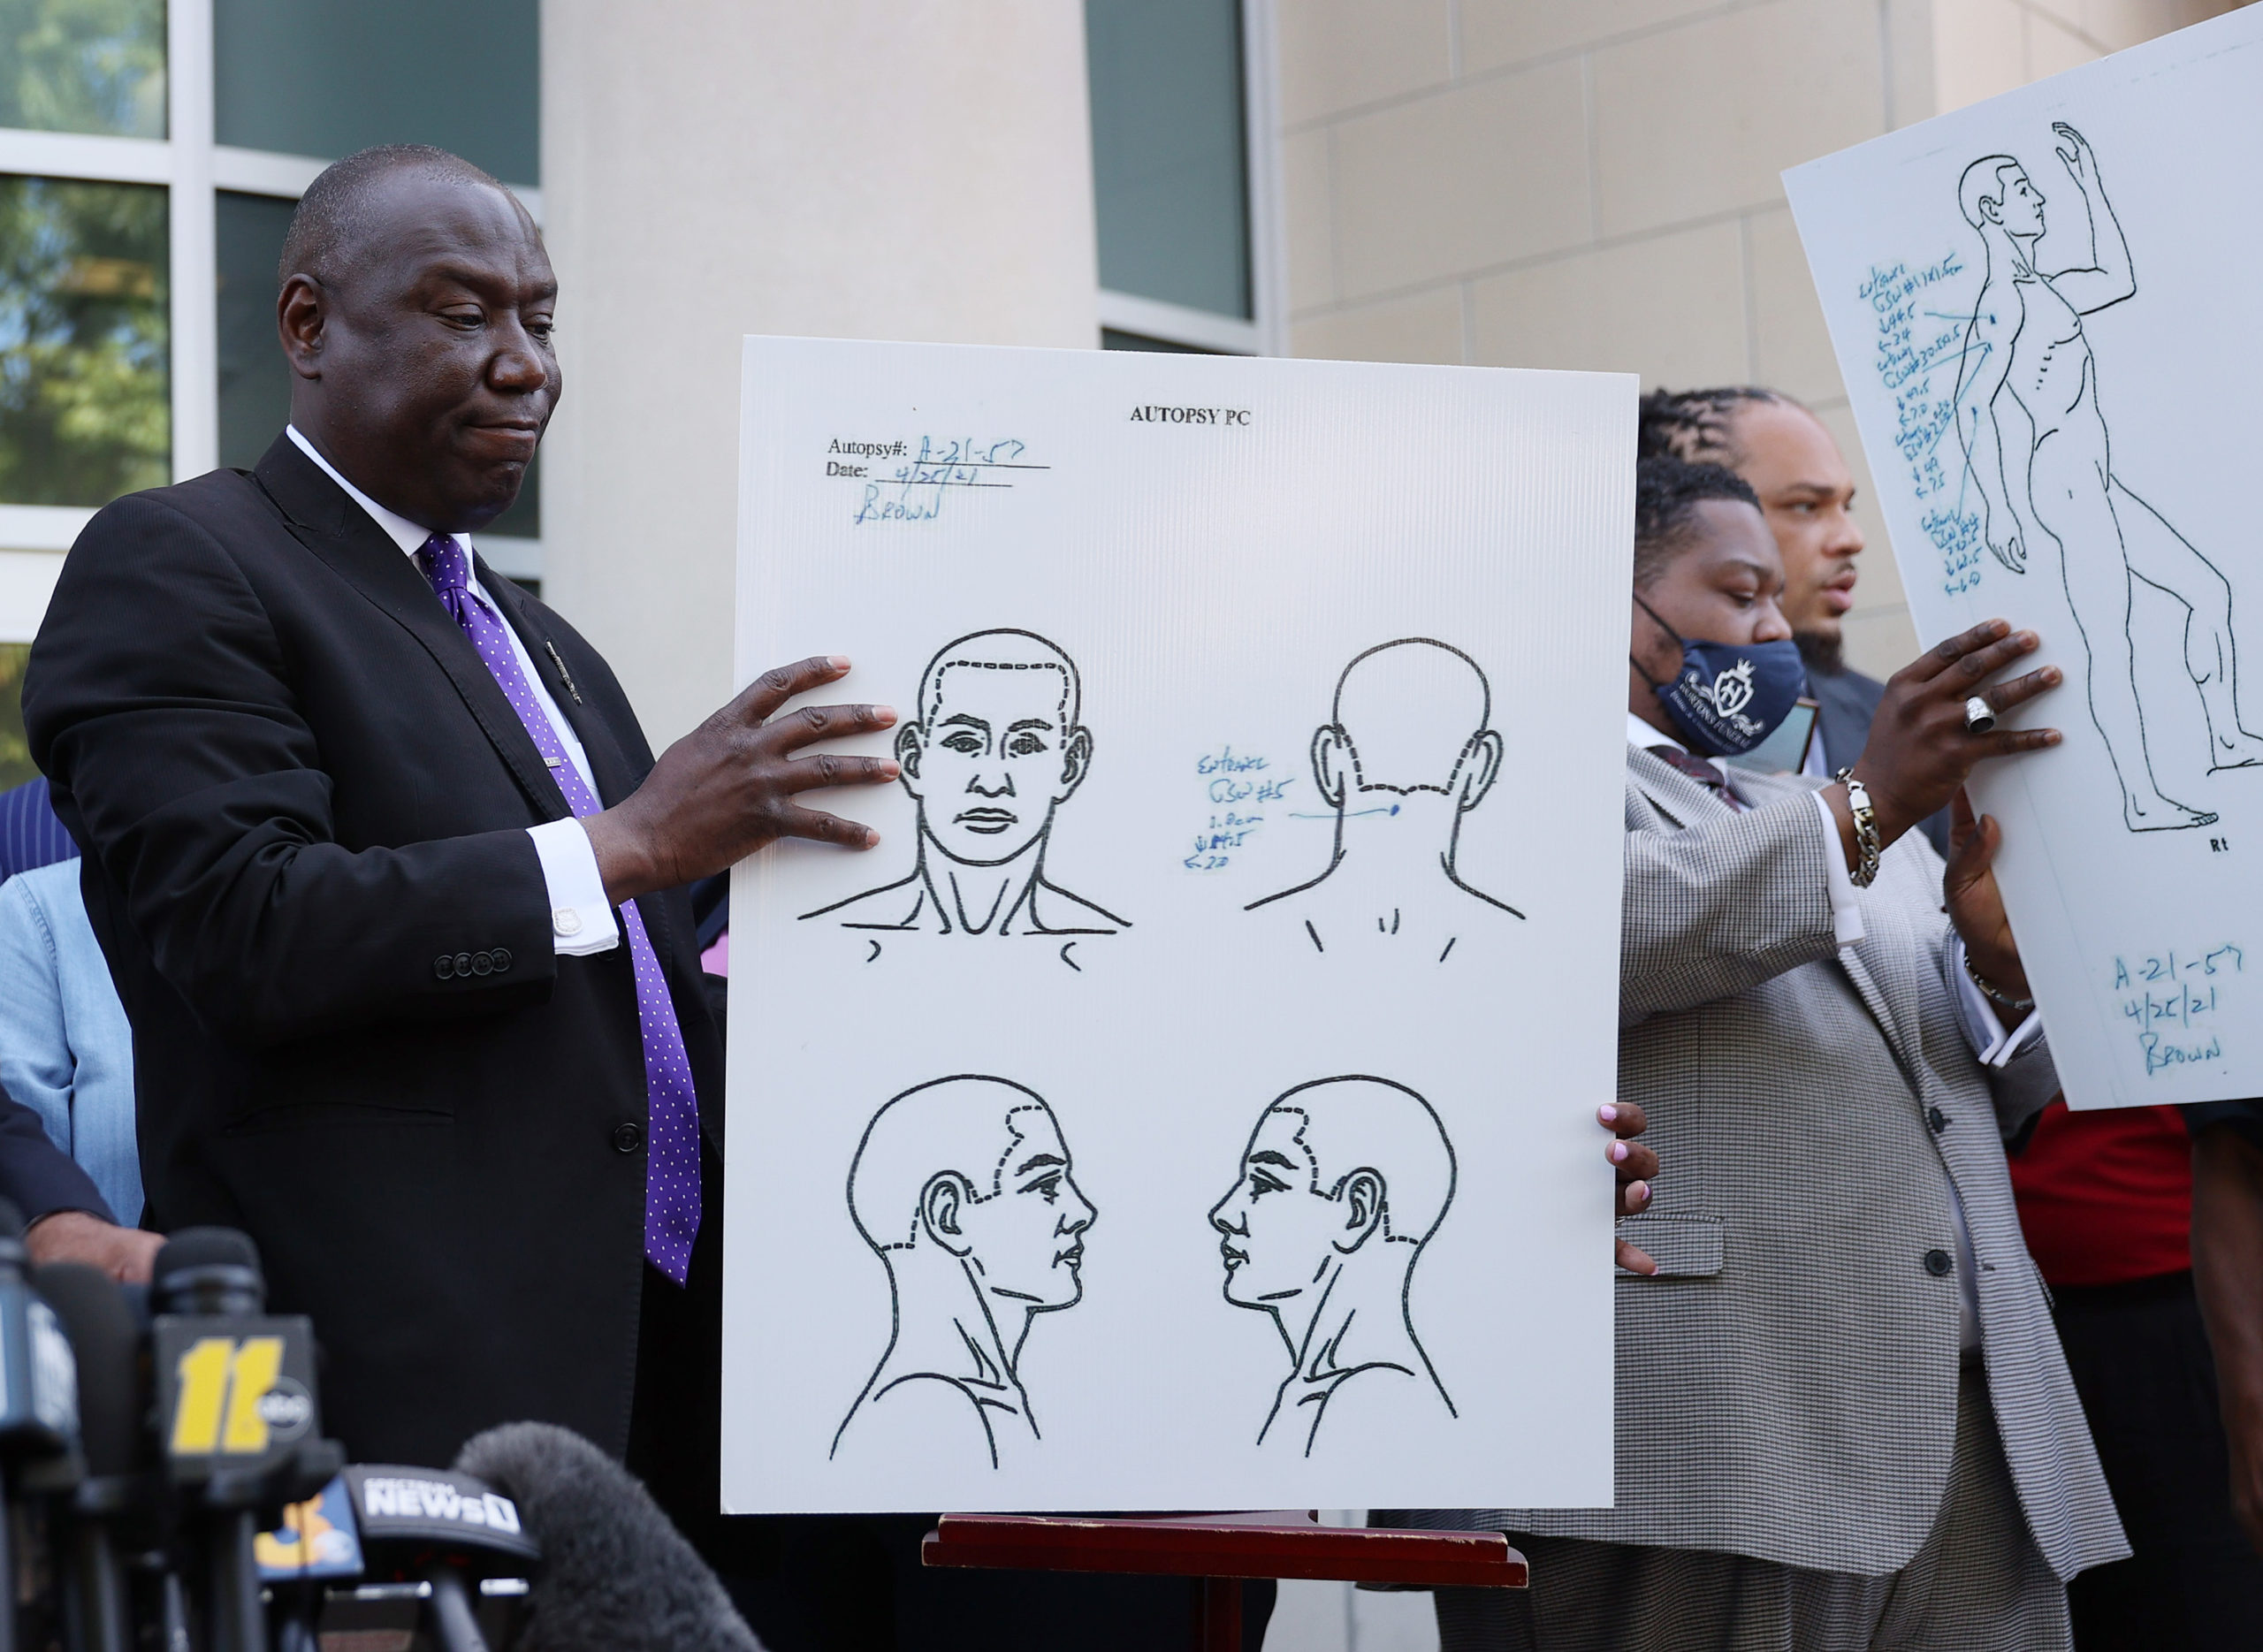 Benjamin Crump (L), one of the lawyers representing the family of Andrew Brown Jr., holds an autopsy chart that his team conducted showing where Mr. Brown was shot on April 27, 2021 in Elizabeth City, North Carolina. Mr. Crump and family members spoke to the media about the 20 seconds of police body camera footage they were shown and an autopsy they performed after the shooting death of Andrew Brown Jr. on April 21 by Pasquotank County Sheriff deputies. (Photo by Joe Raedle/Getty Images)